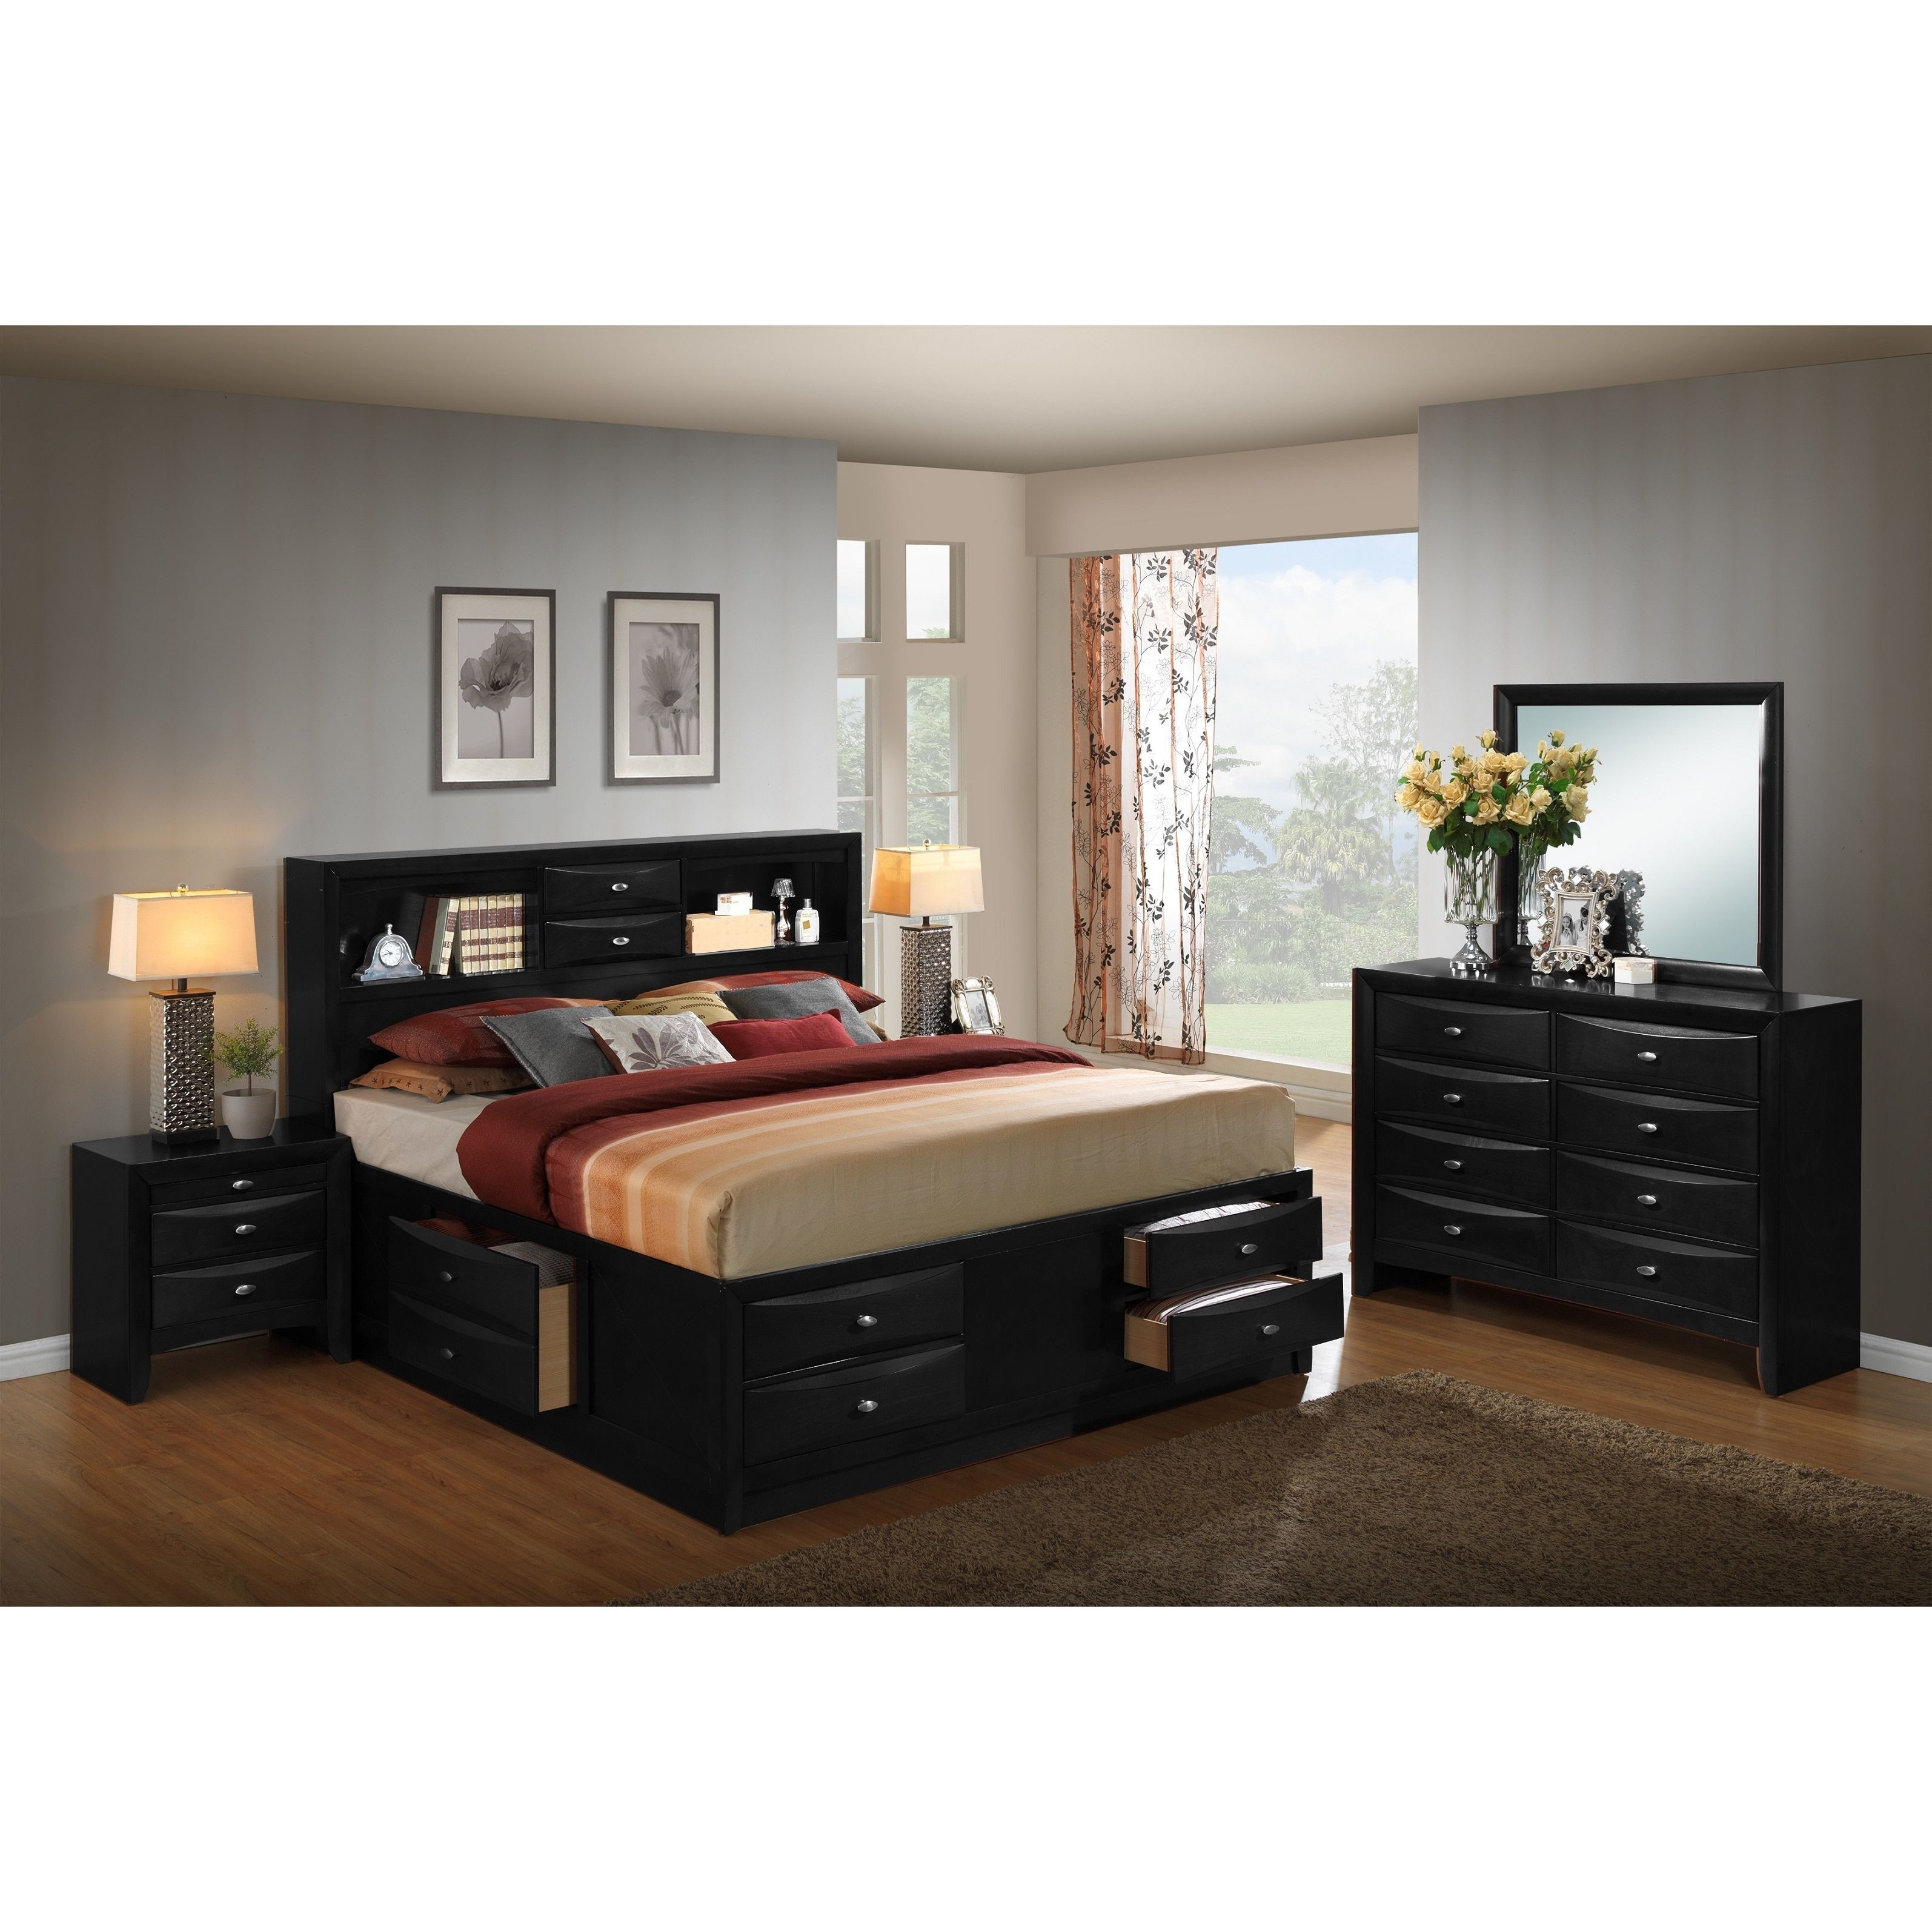 Blemerey black wood storage bed group with king bed dresser